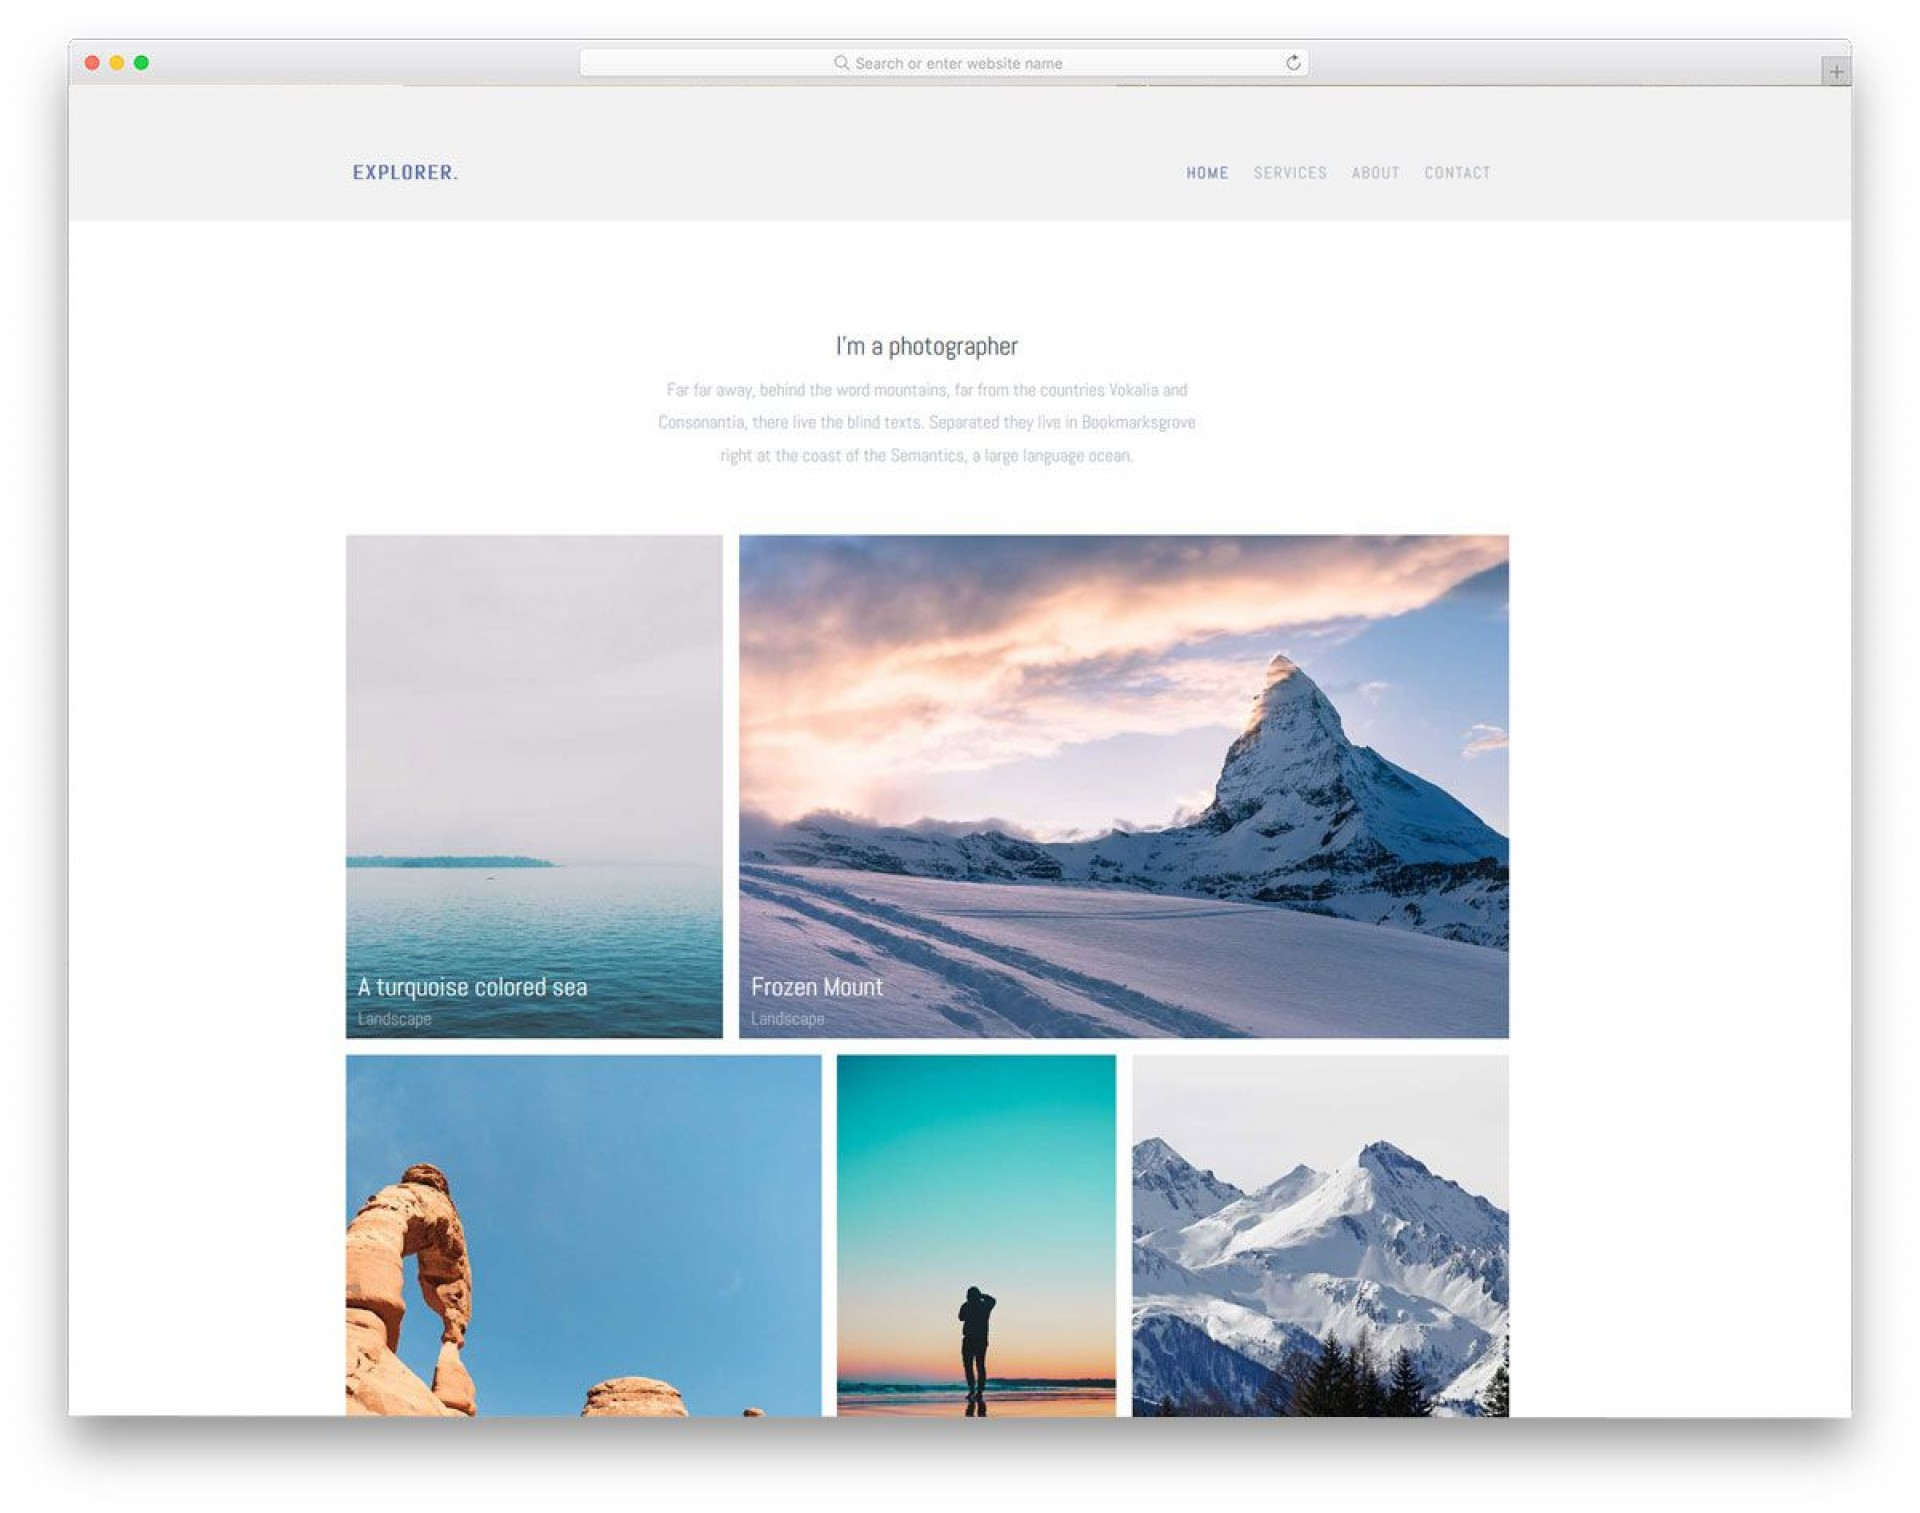 004 Wonderful Simple Web Page Template Photo  Free Download Html Code1920